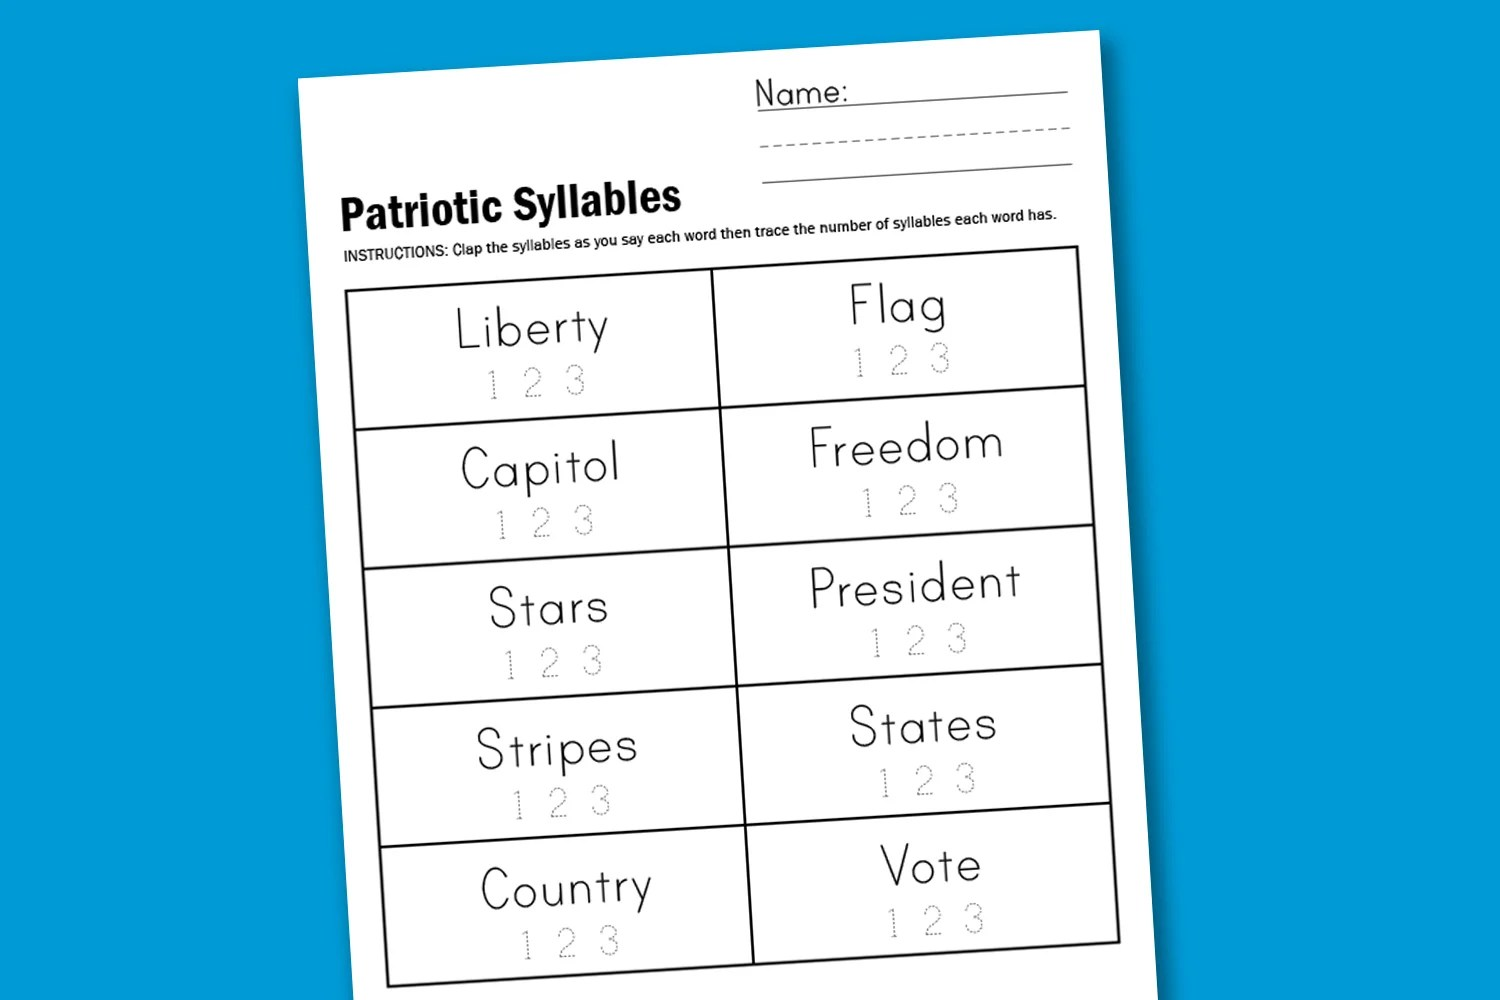 Worksheet Wednesday Patriotic Syllables